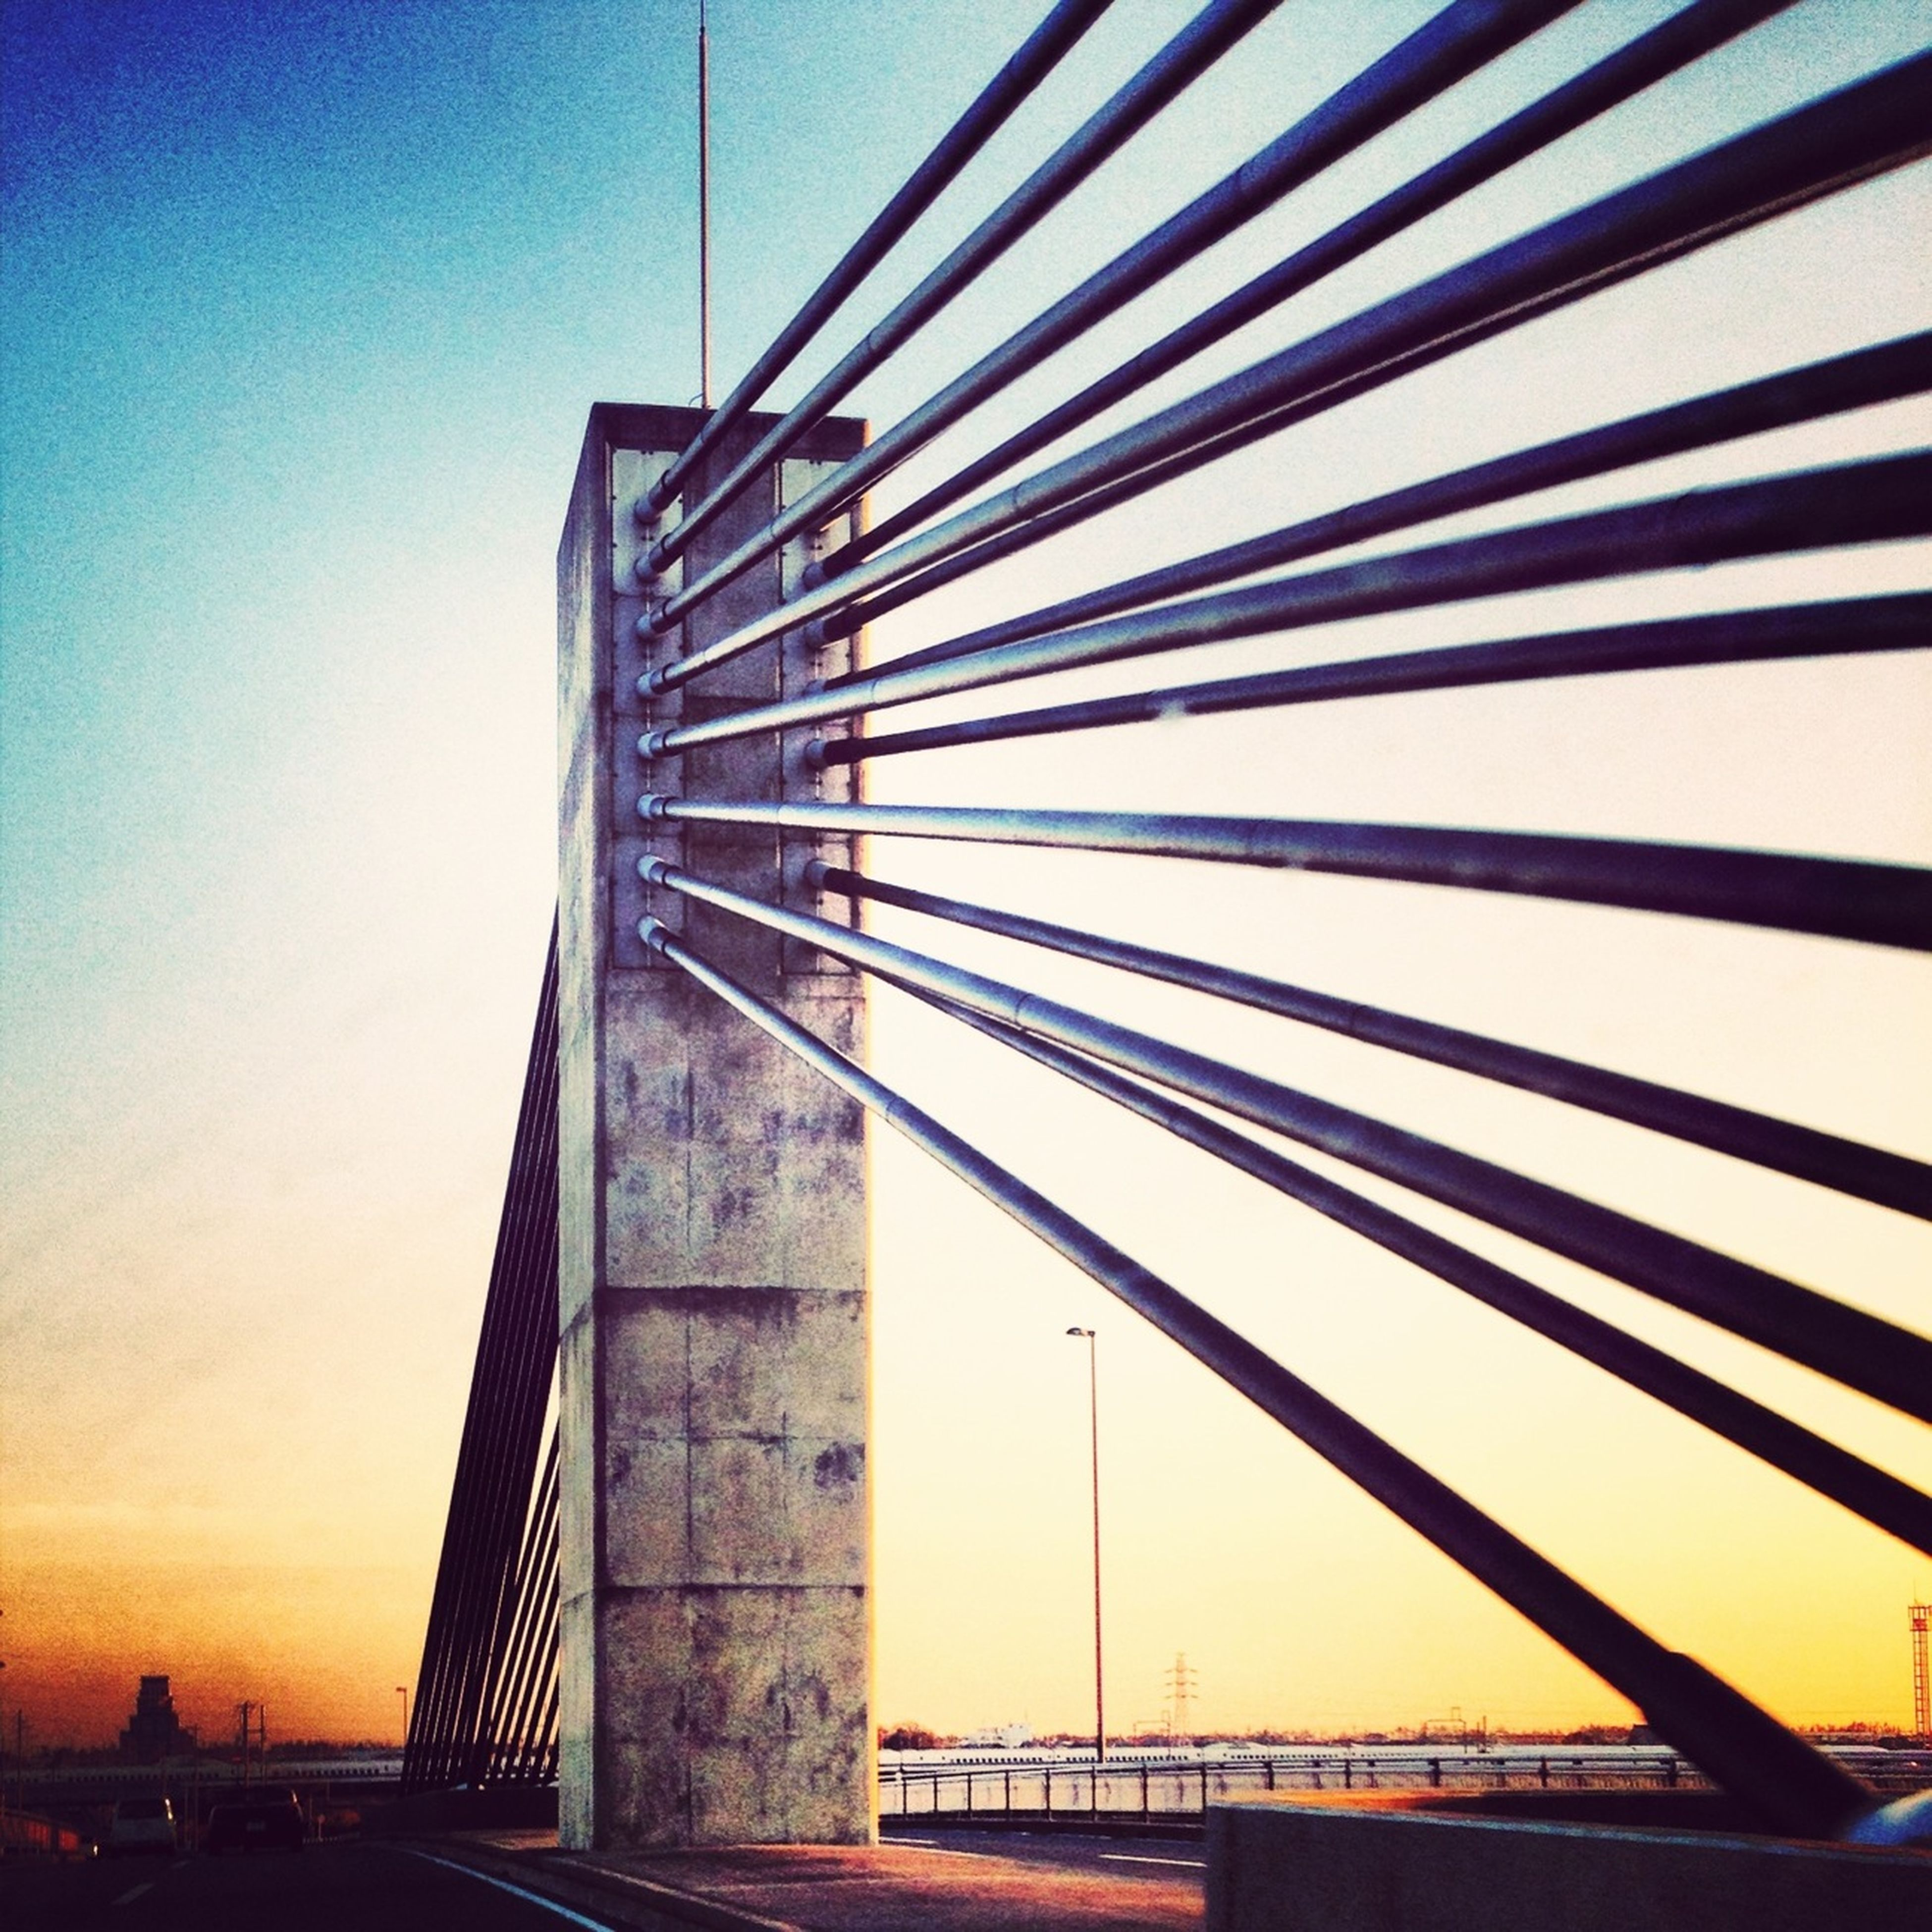 built structure, architecture, low angle view, modern, bridge - man made structure, engineering, connection, sunset, clear sky, sky, building exterior, sunlight, bridge, suspension bridge, tall - high, city, railing, outdoors, silhouette, no people